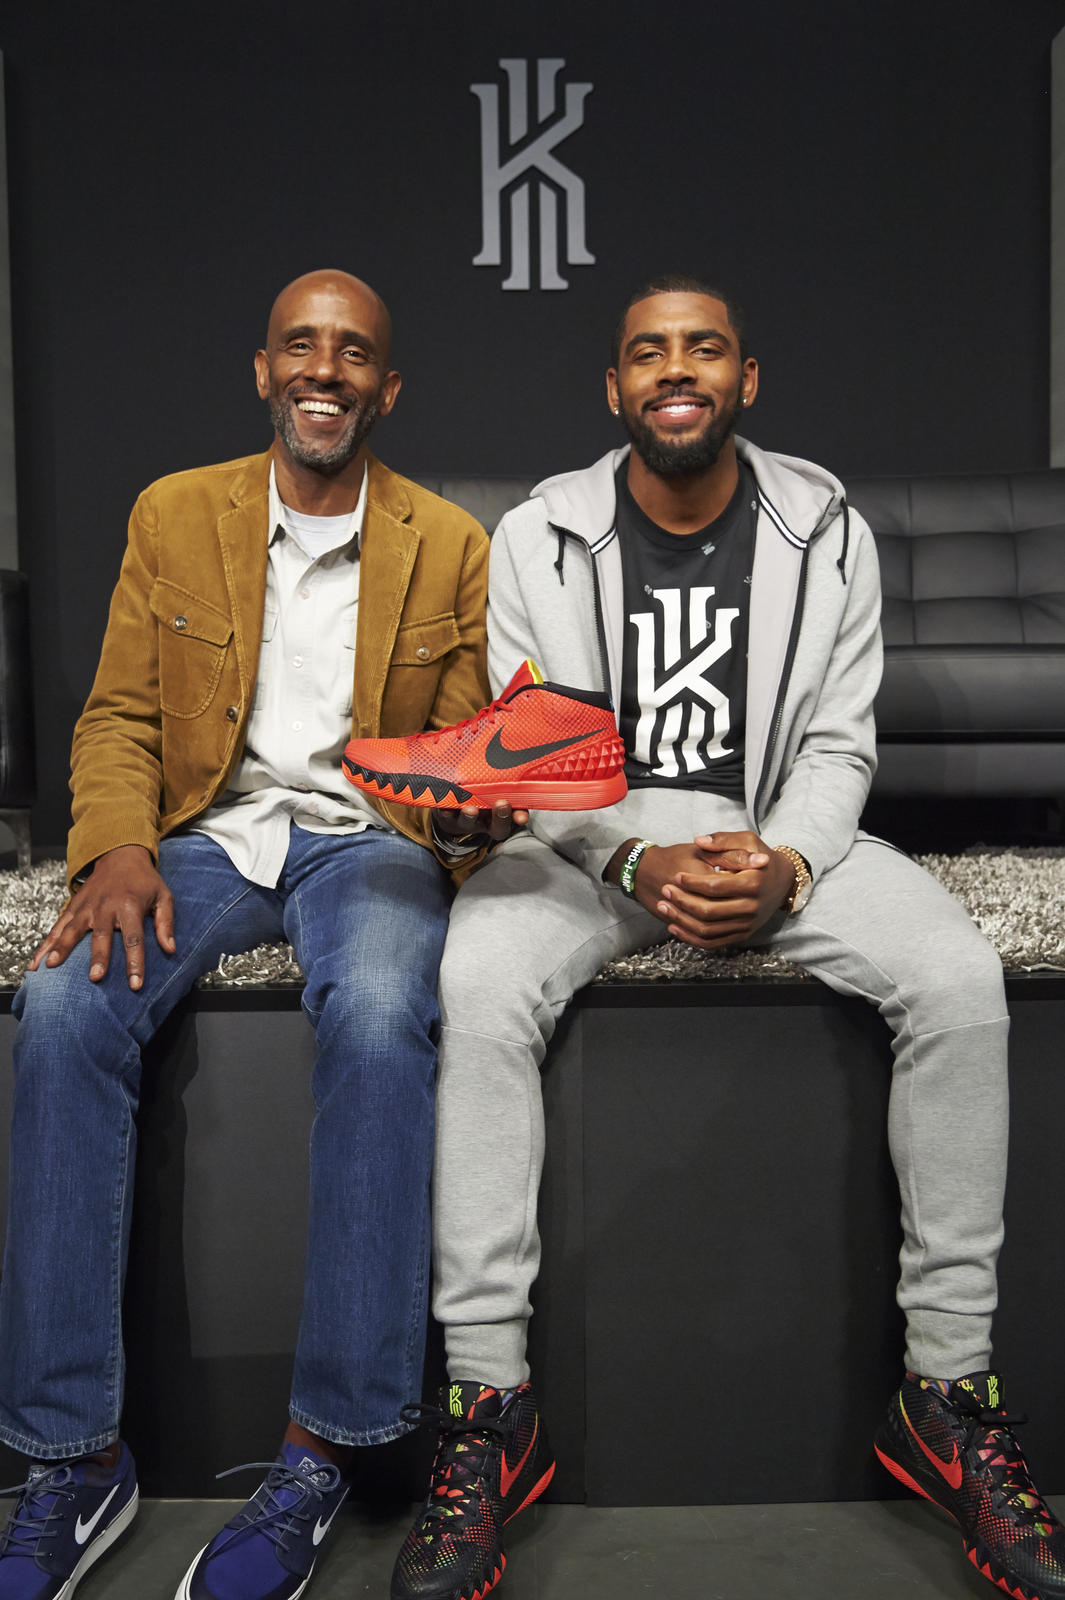 Amazon Jeans 10 Things You Don't Know About Kyrie Irving - Nike News